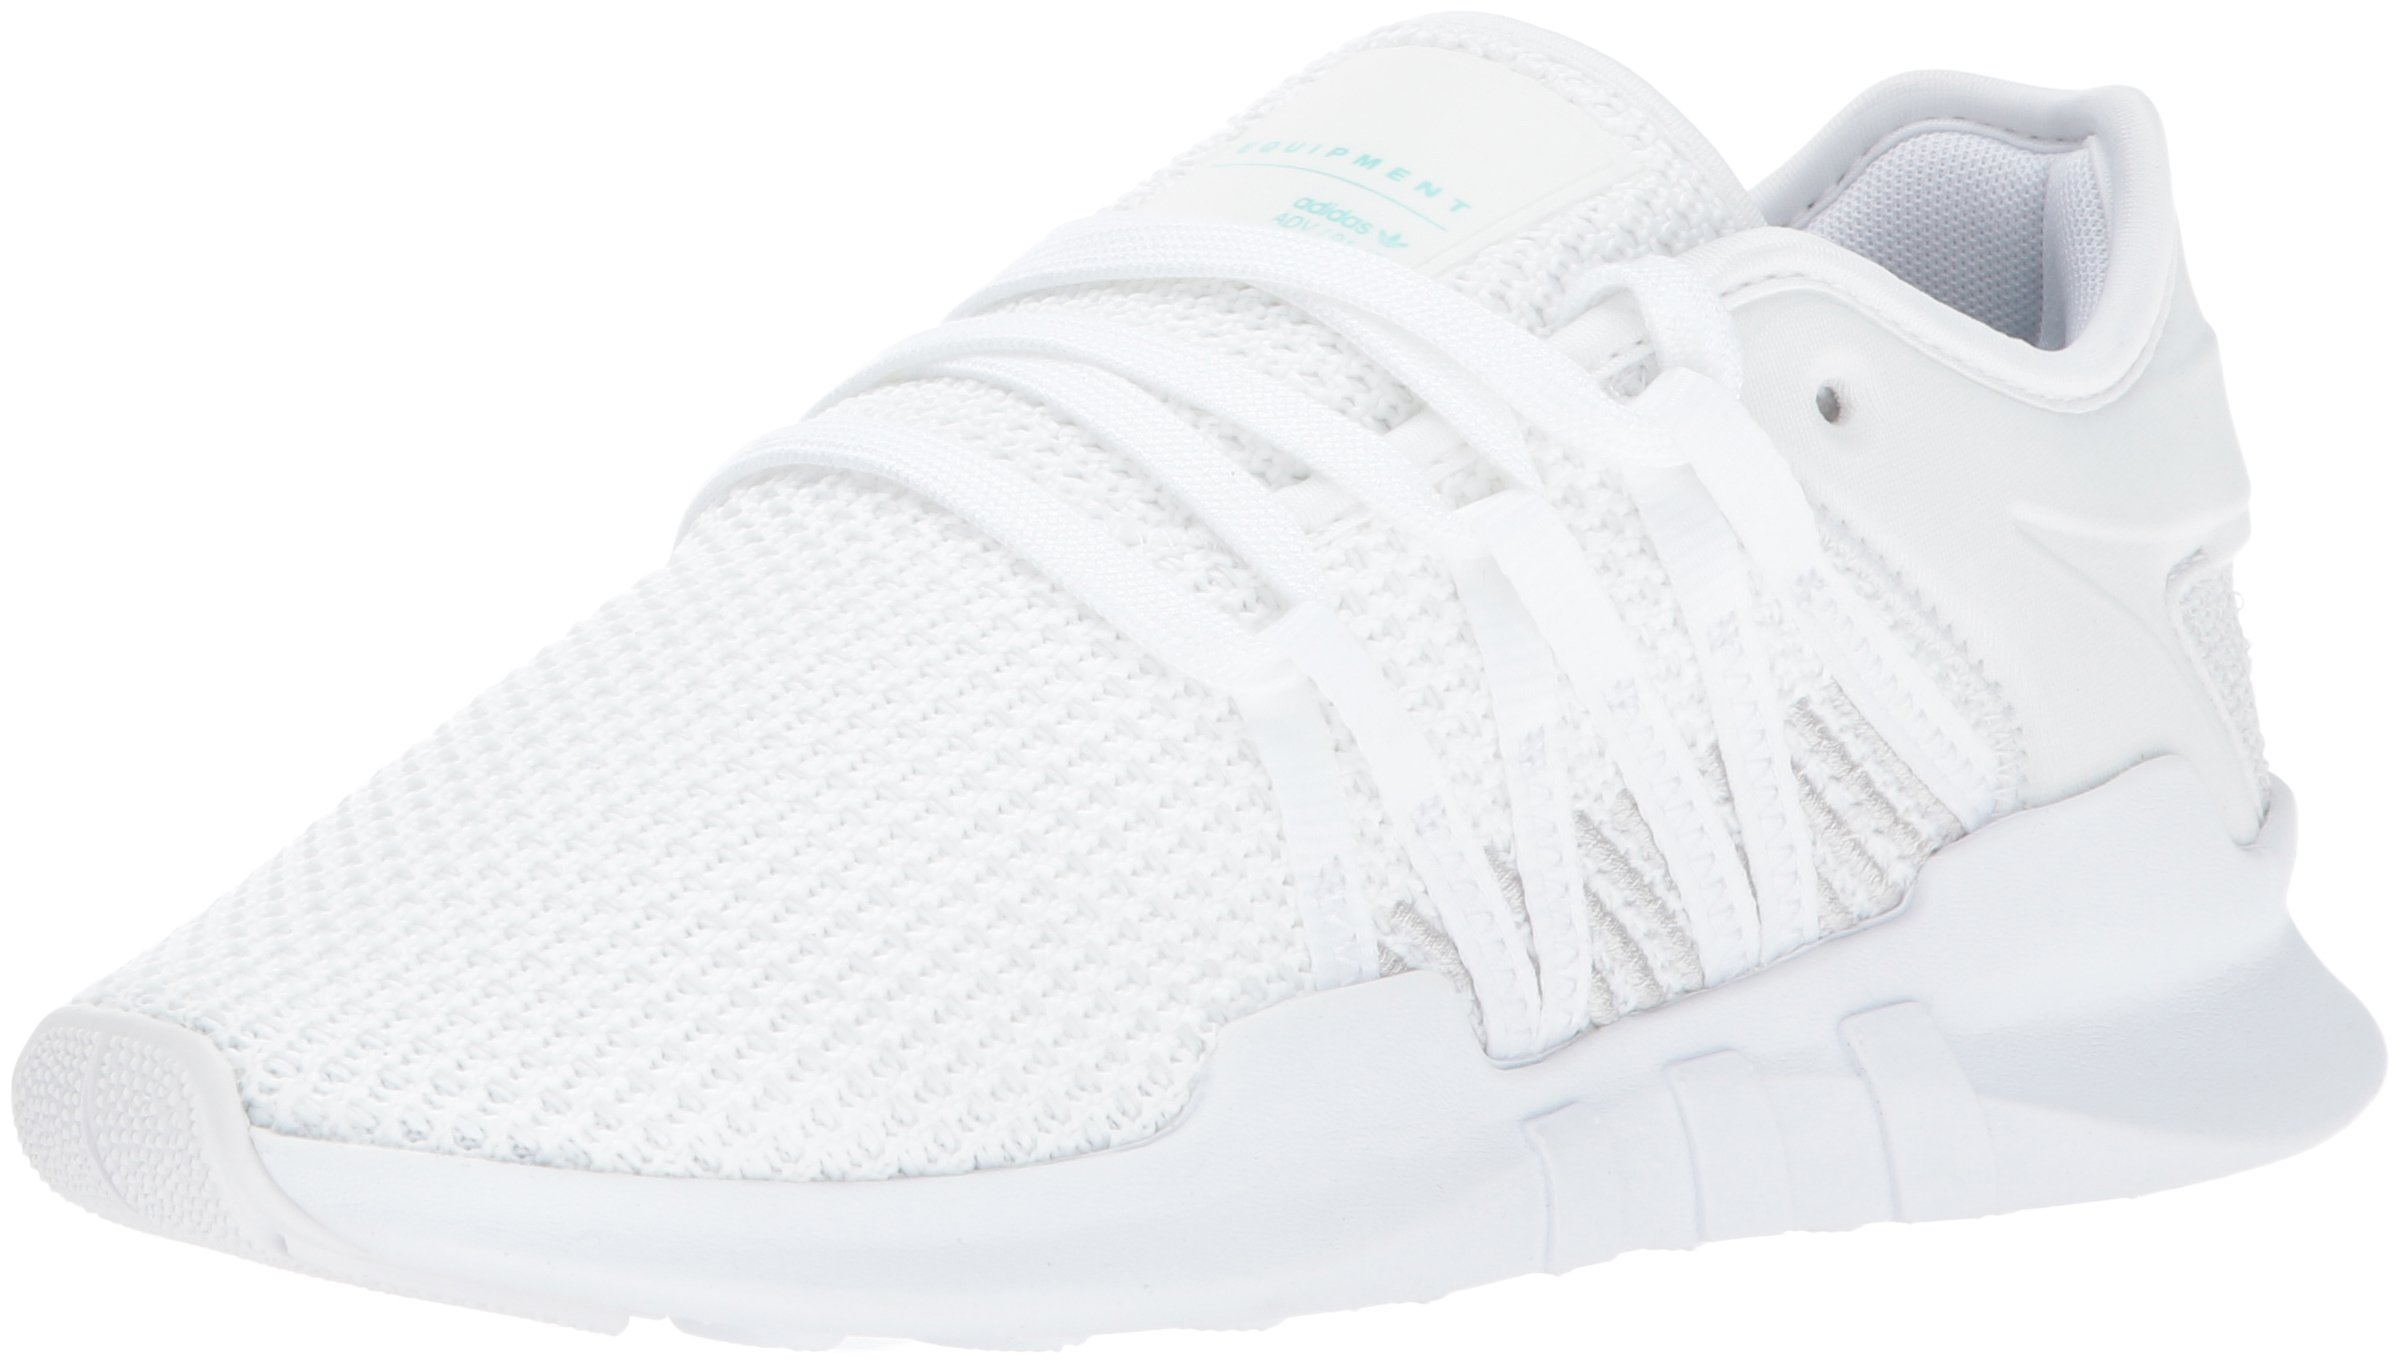 quality design bf145 12ae9 adidas Originals Women's EQT Racing ADV W Sneaker, White/Grey ONE, 7.5  Medium US